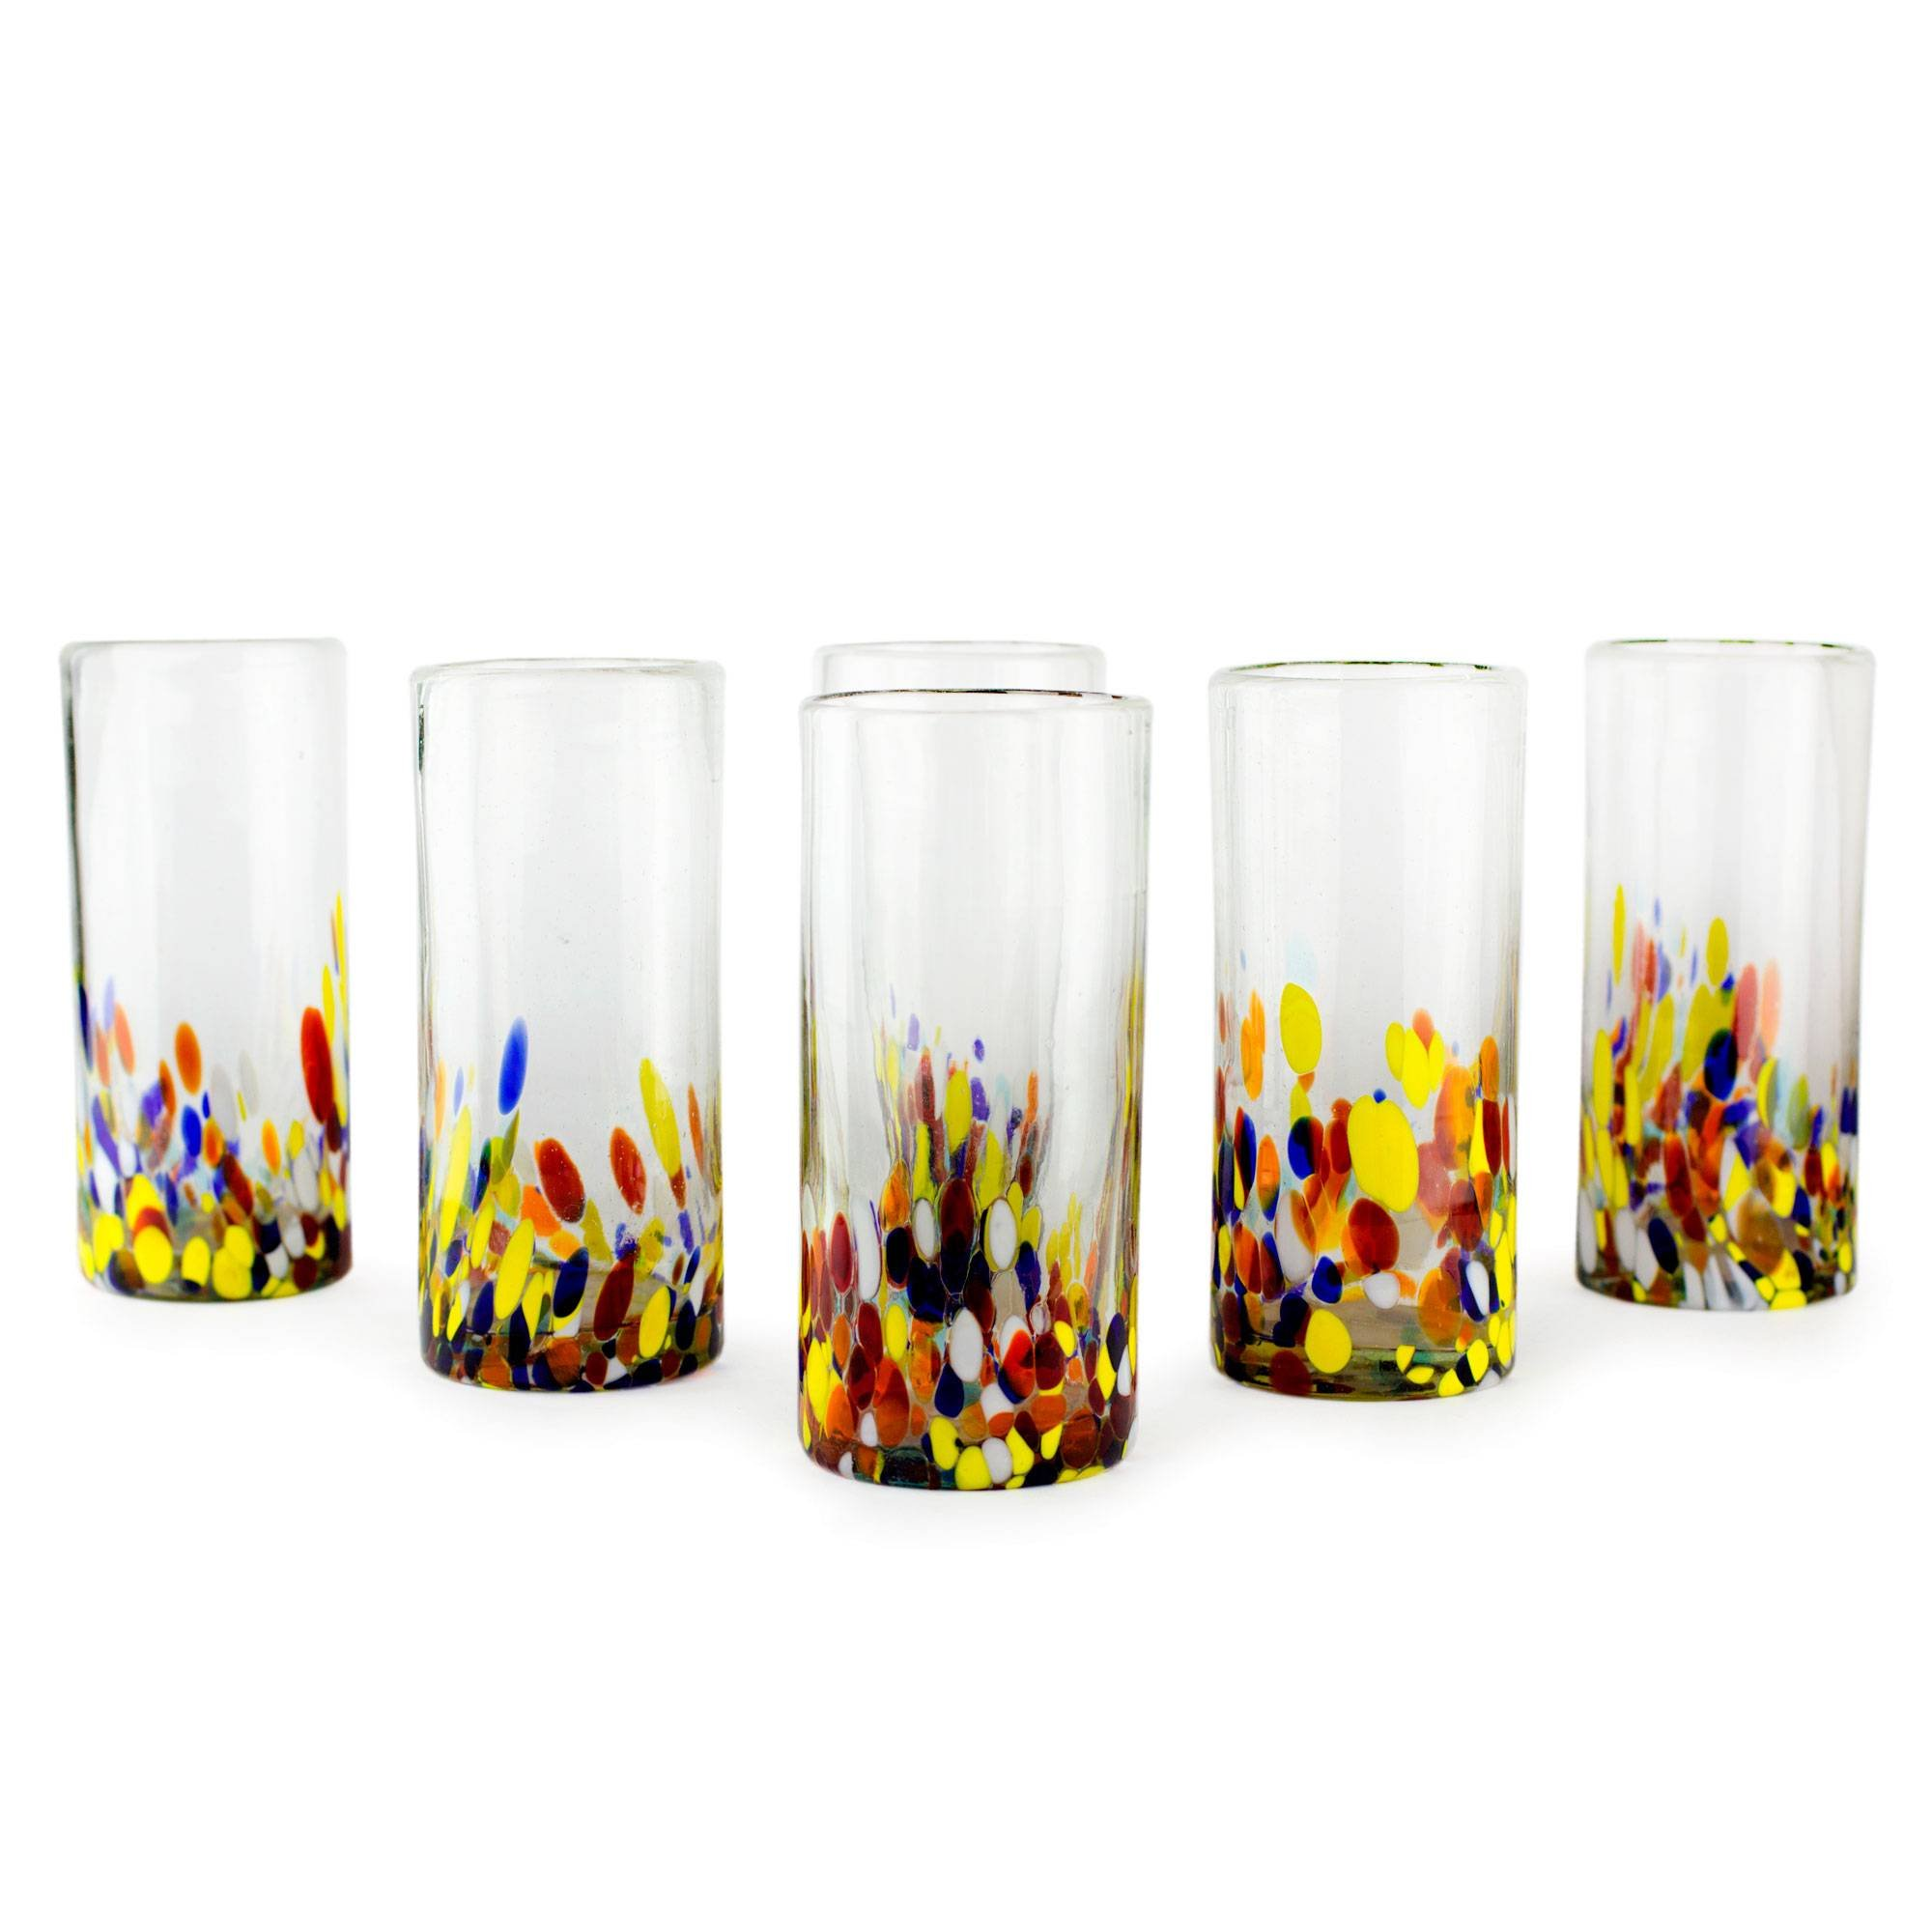 NOVICA Hand Blown Multicolor Recycled Glass Cocktail Glasses, 19 oz 'Confetti' (set of 6) by NOVICA